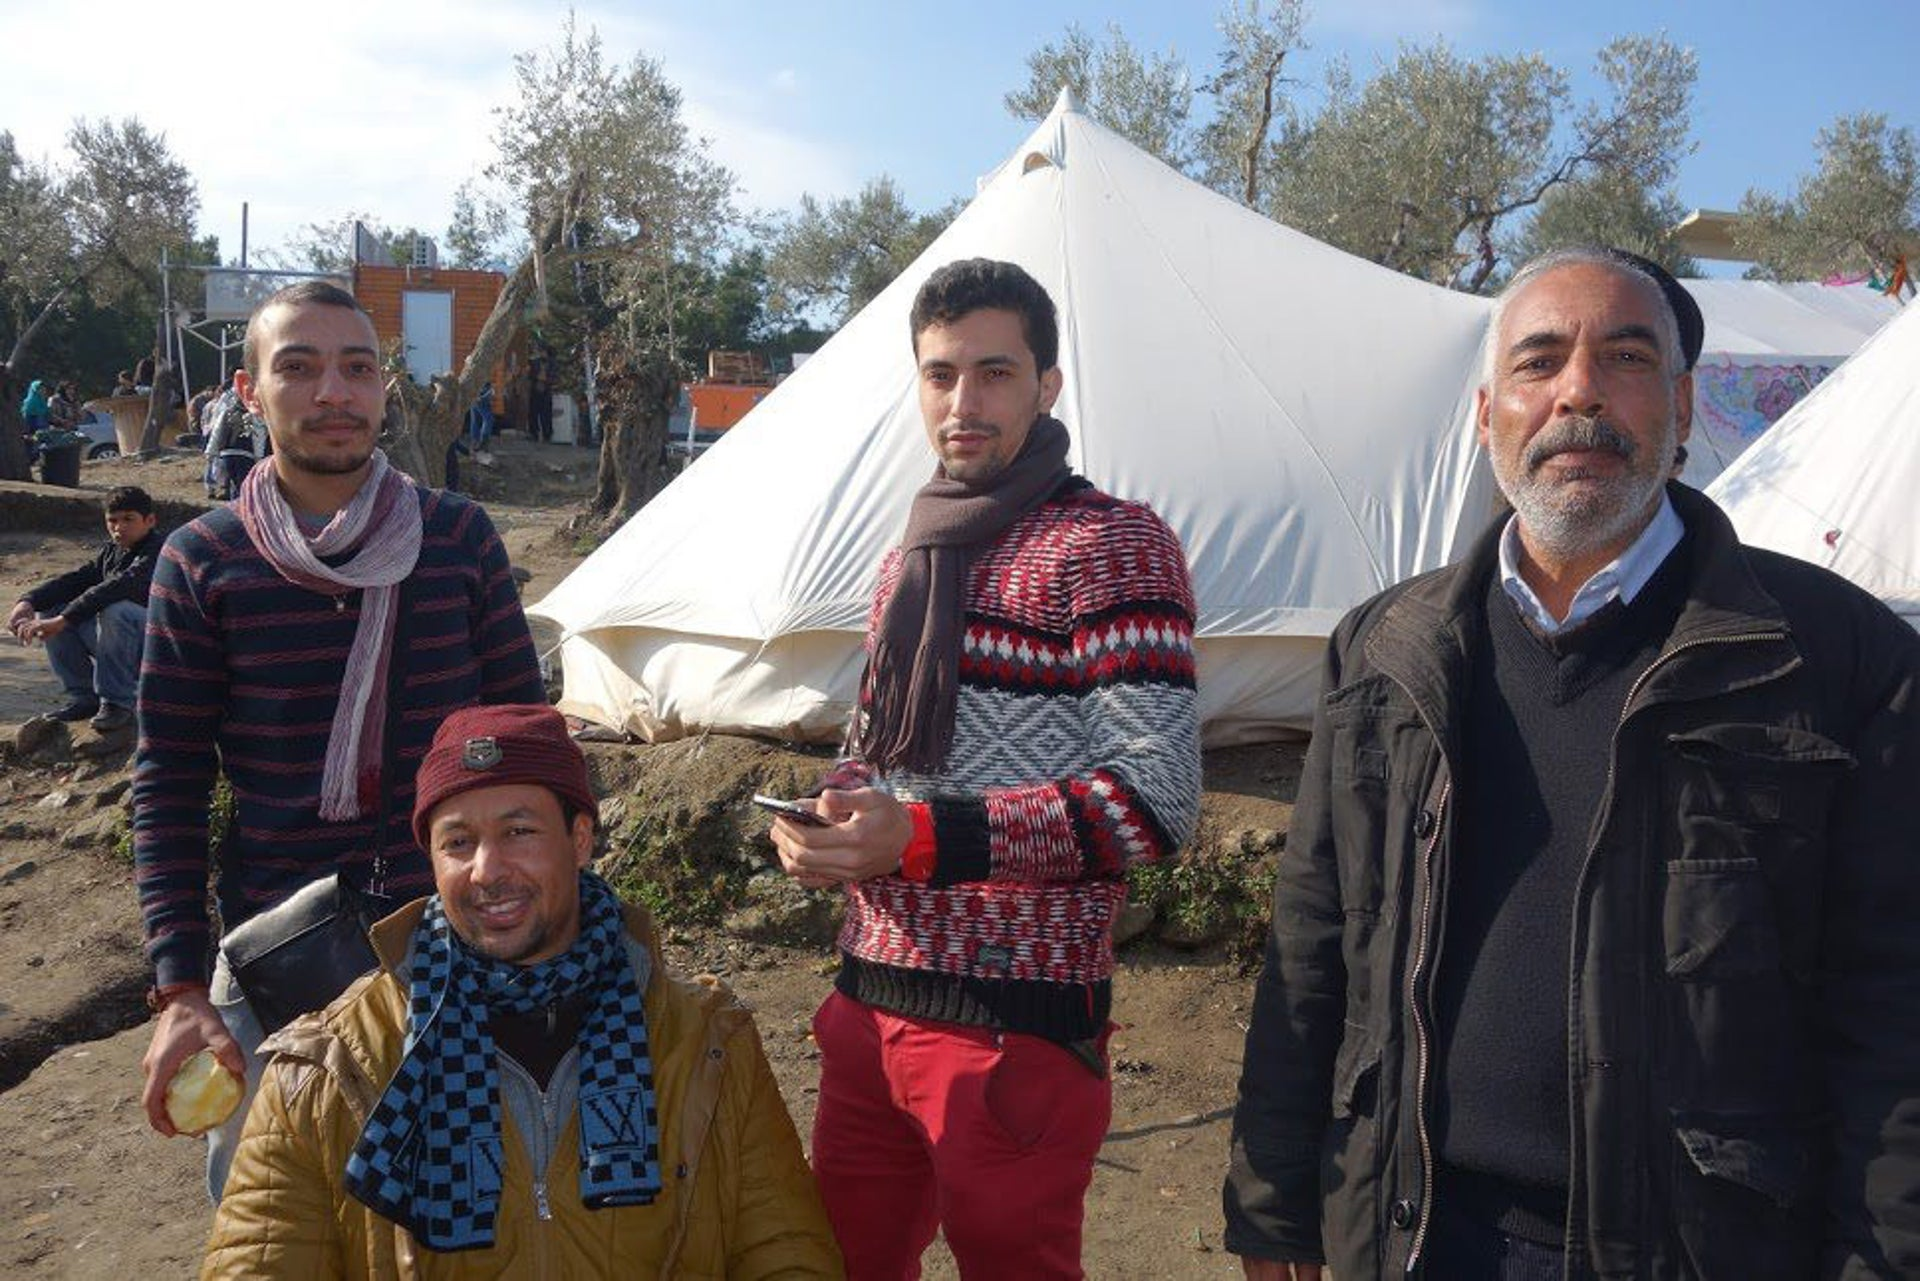 An Iraqi man (right) and three Libyan men at the main refugee camp on Lesbos.